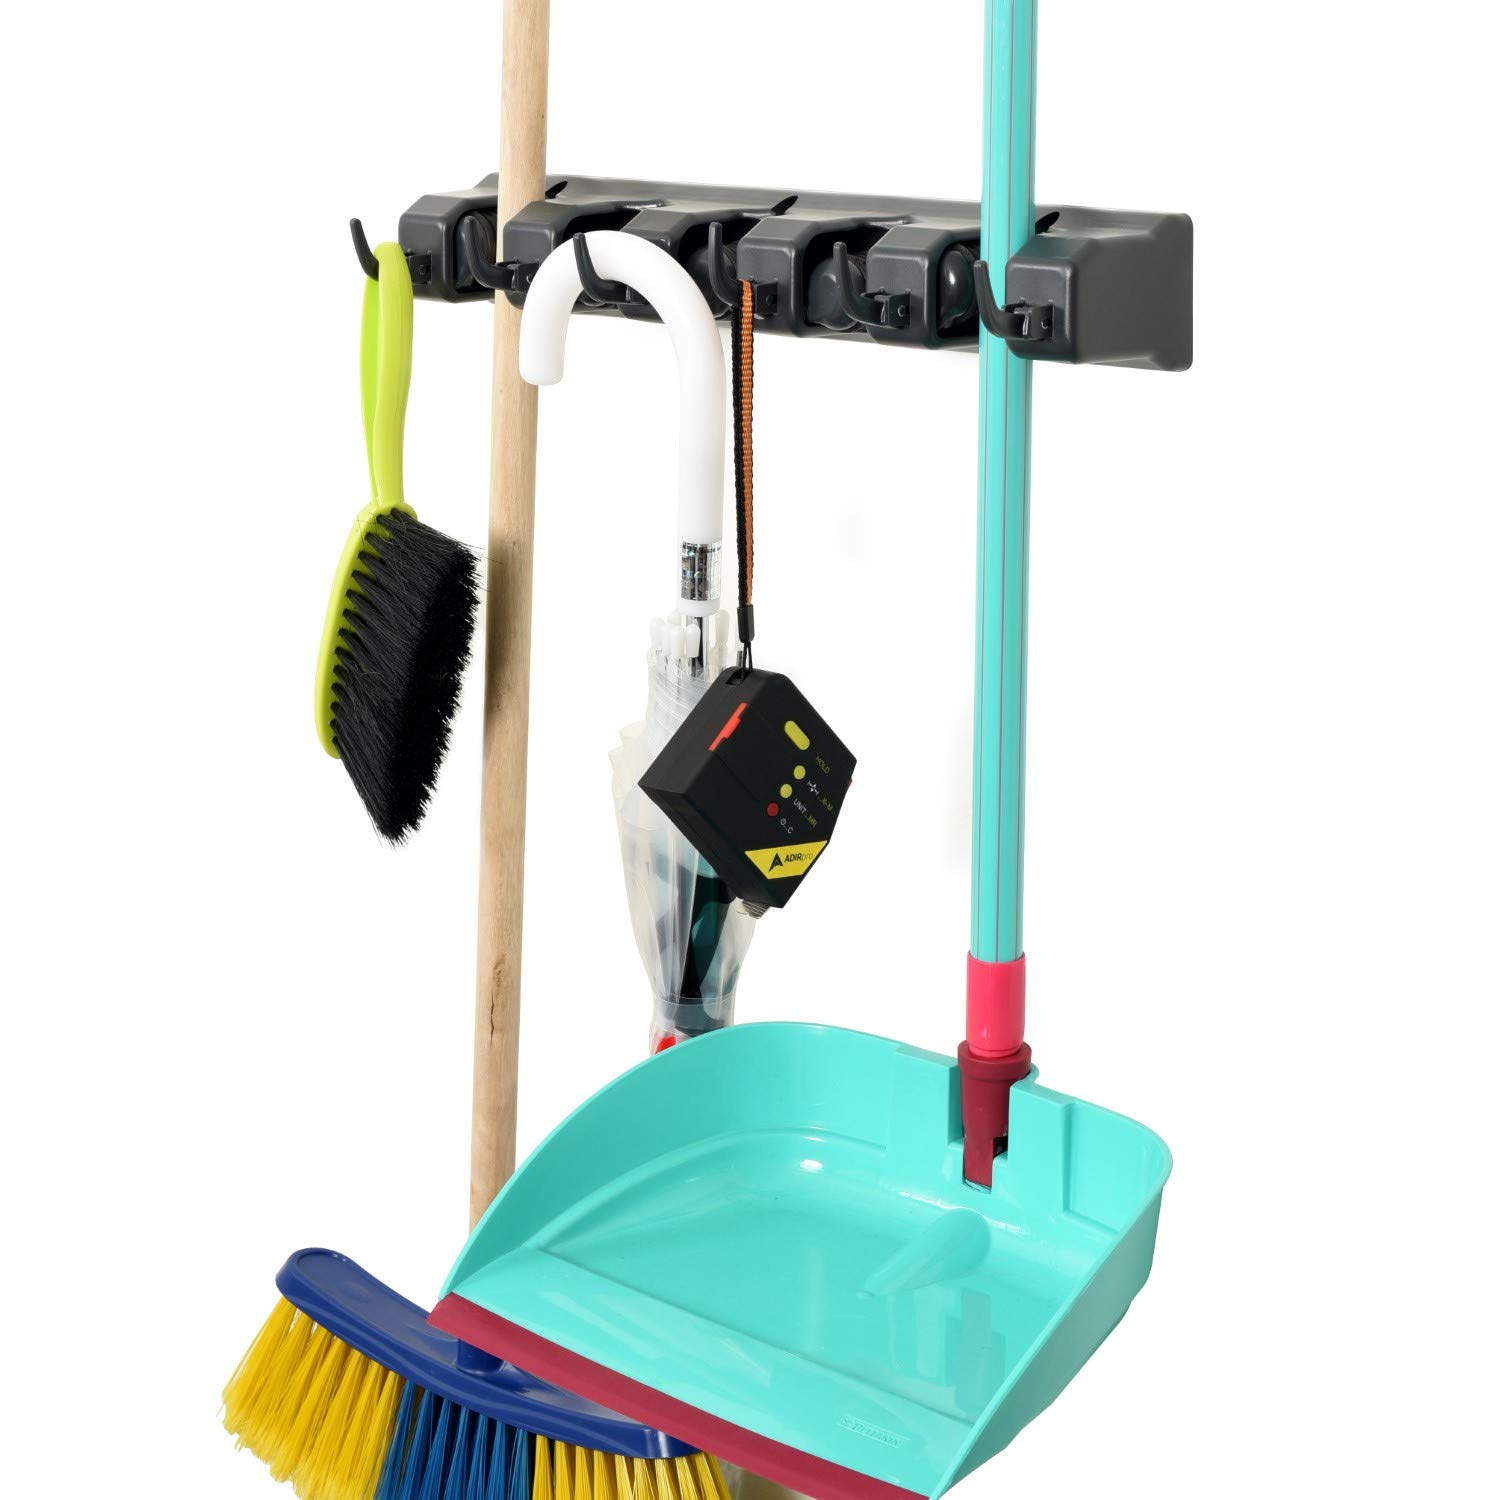 Alpine Industries Mop and Broom Holder Hooks 6 Du 5 Daily bargain sale Max 65% OFF Slots –